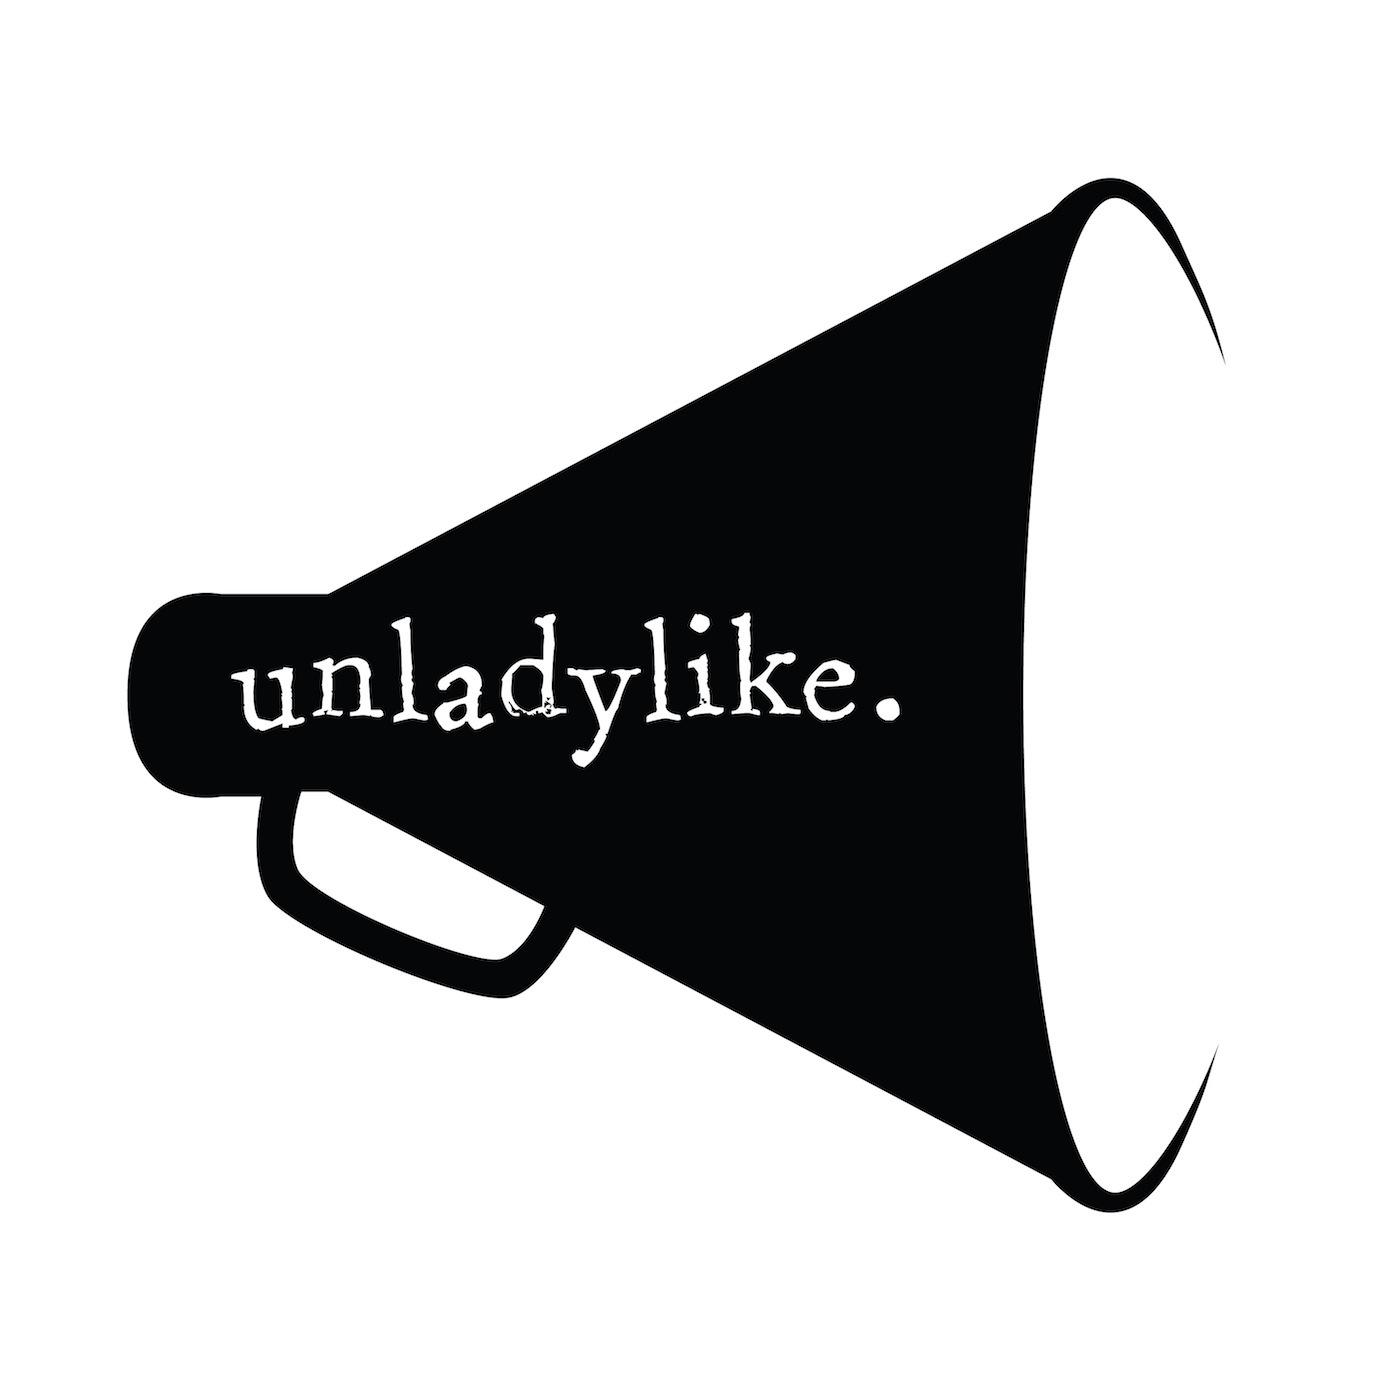 UnladylikePodcast